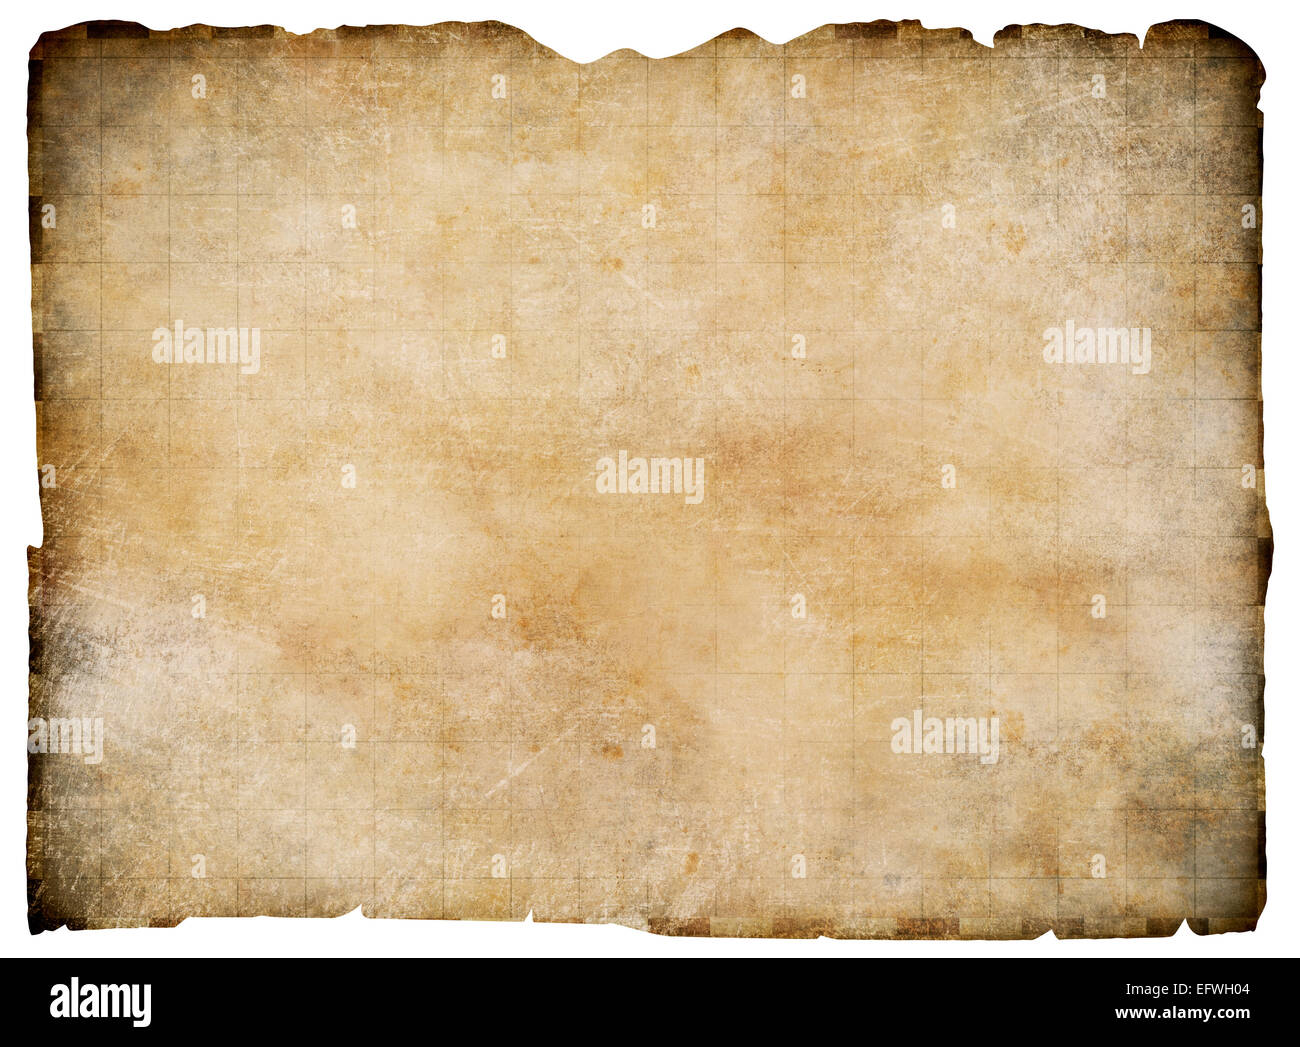 Old blank parchment treasure map isolated. Clipping path is included. - Stock Image